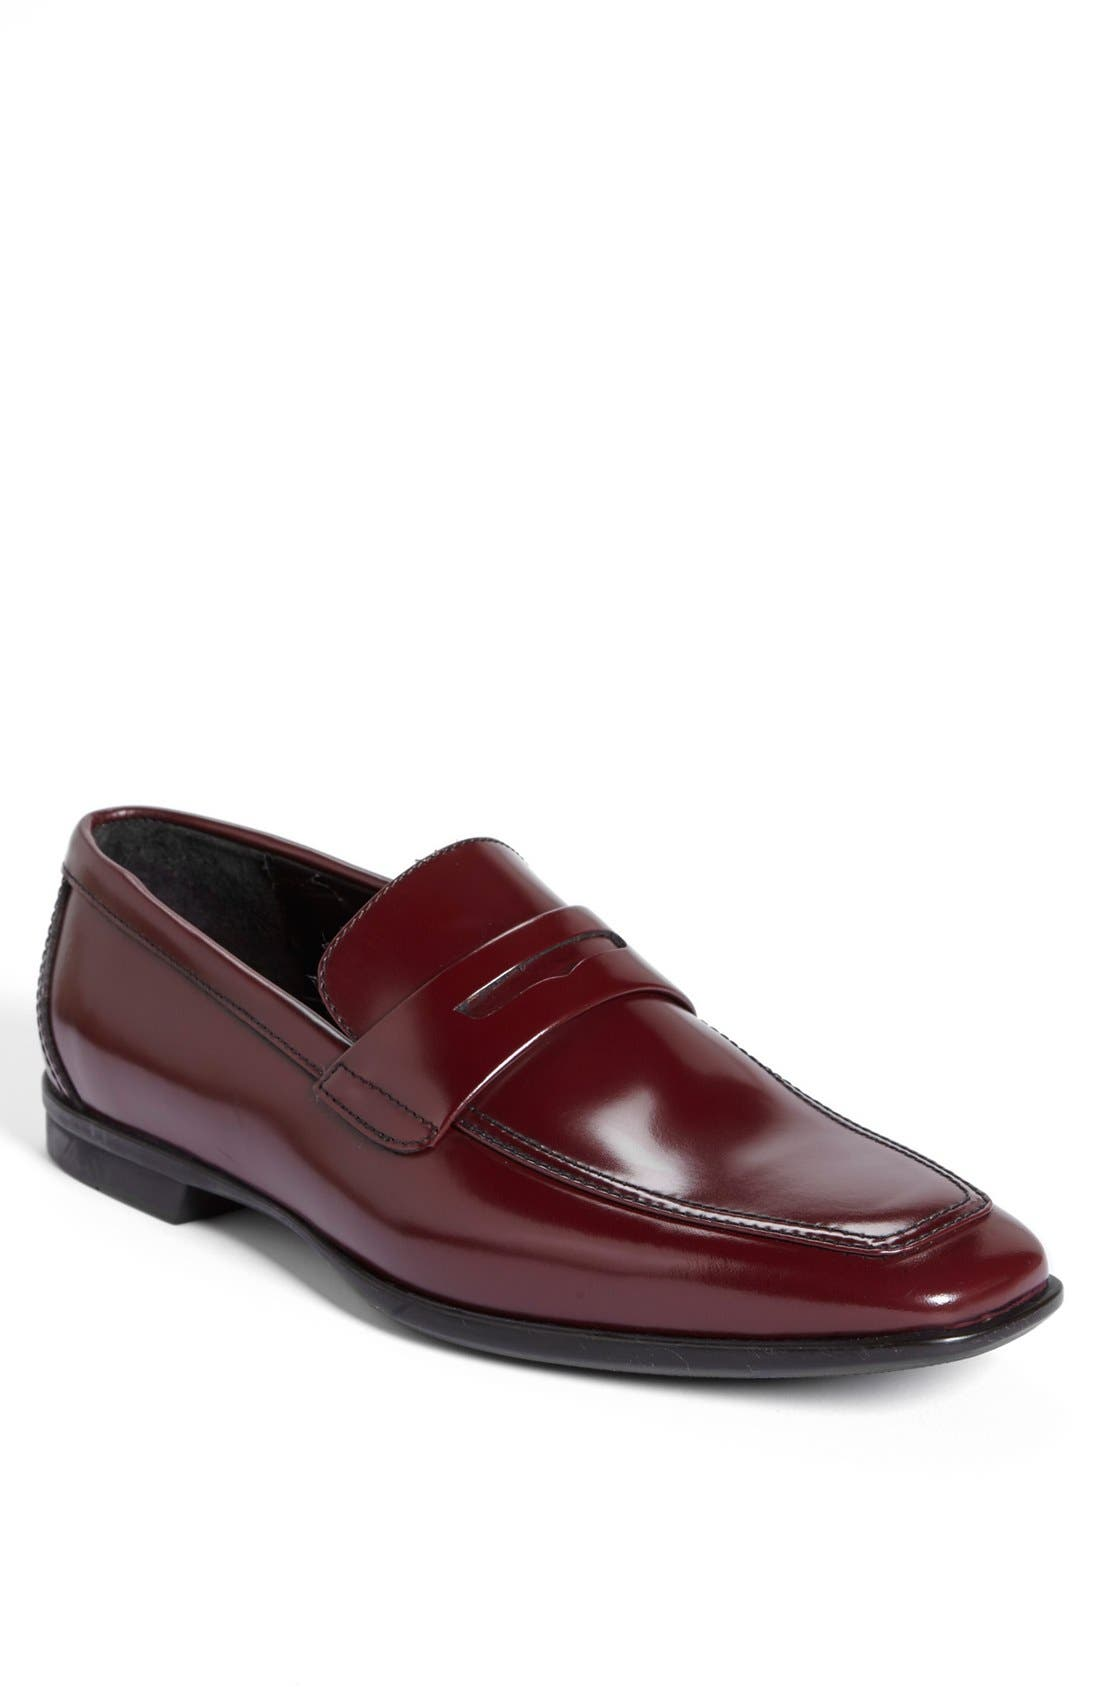 Main Image - Bruno Magli 'Millonia' Penny Loafer